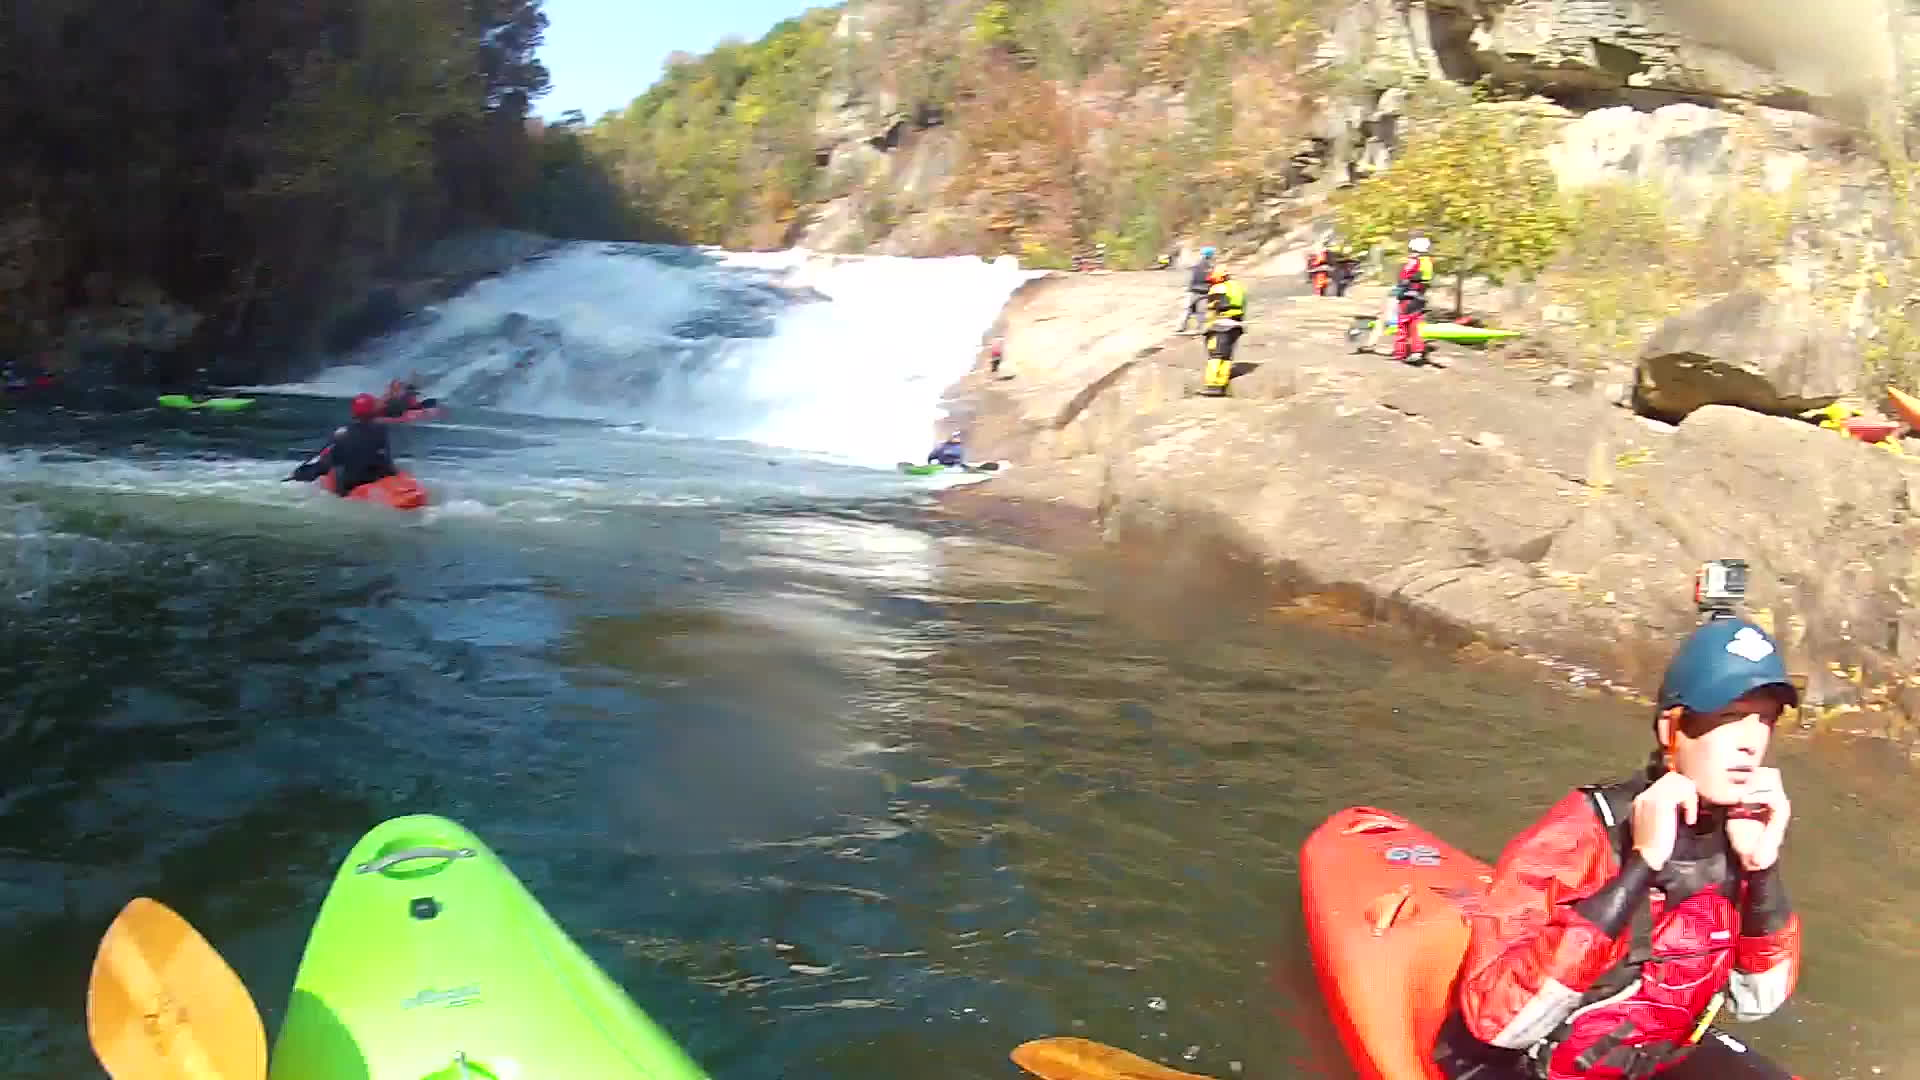 Tallulah gorge kayaking 11/12/16 GIFs